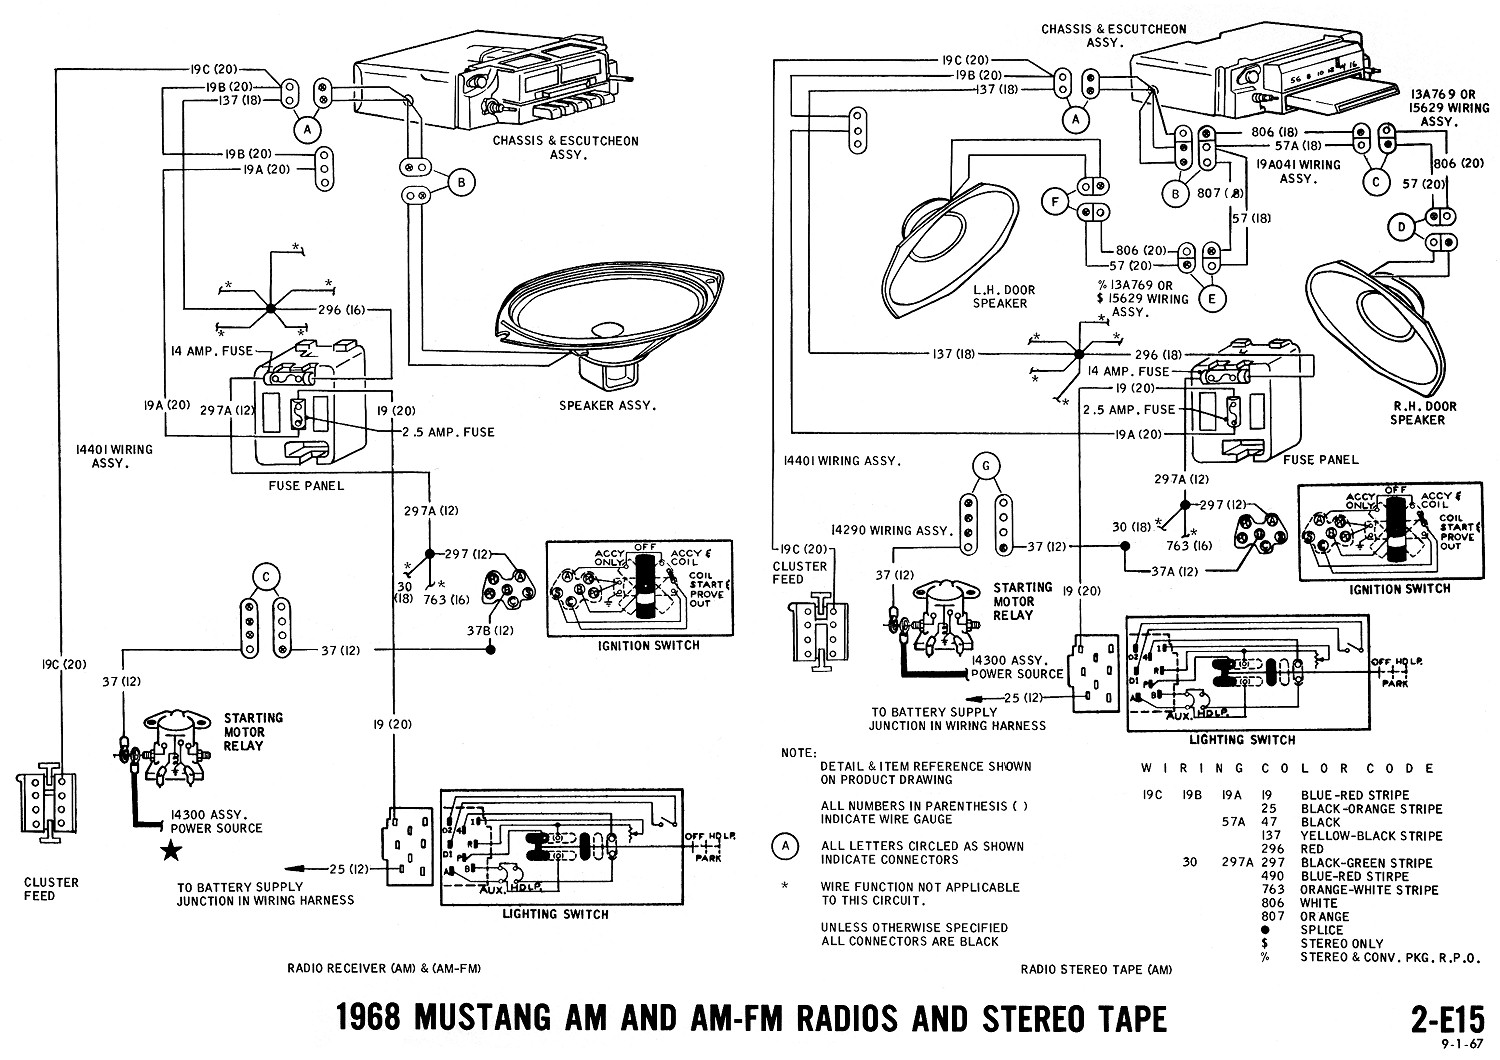 E15 66 mustang wiring diagram radio tape 66 mustang fuse diagram 1969 mustang wiring harness diagram at alyssarenee.co